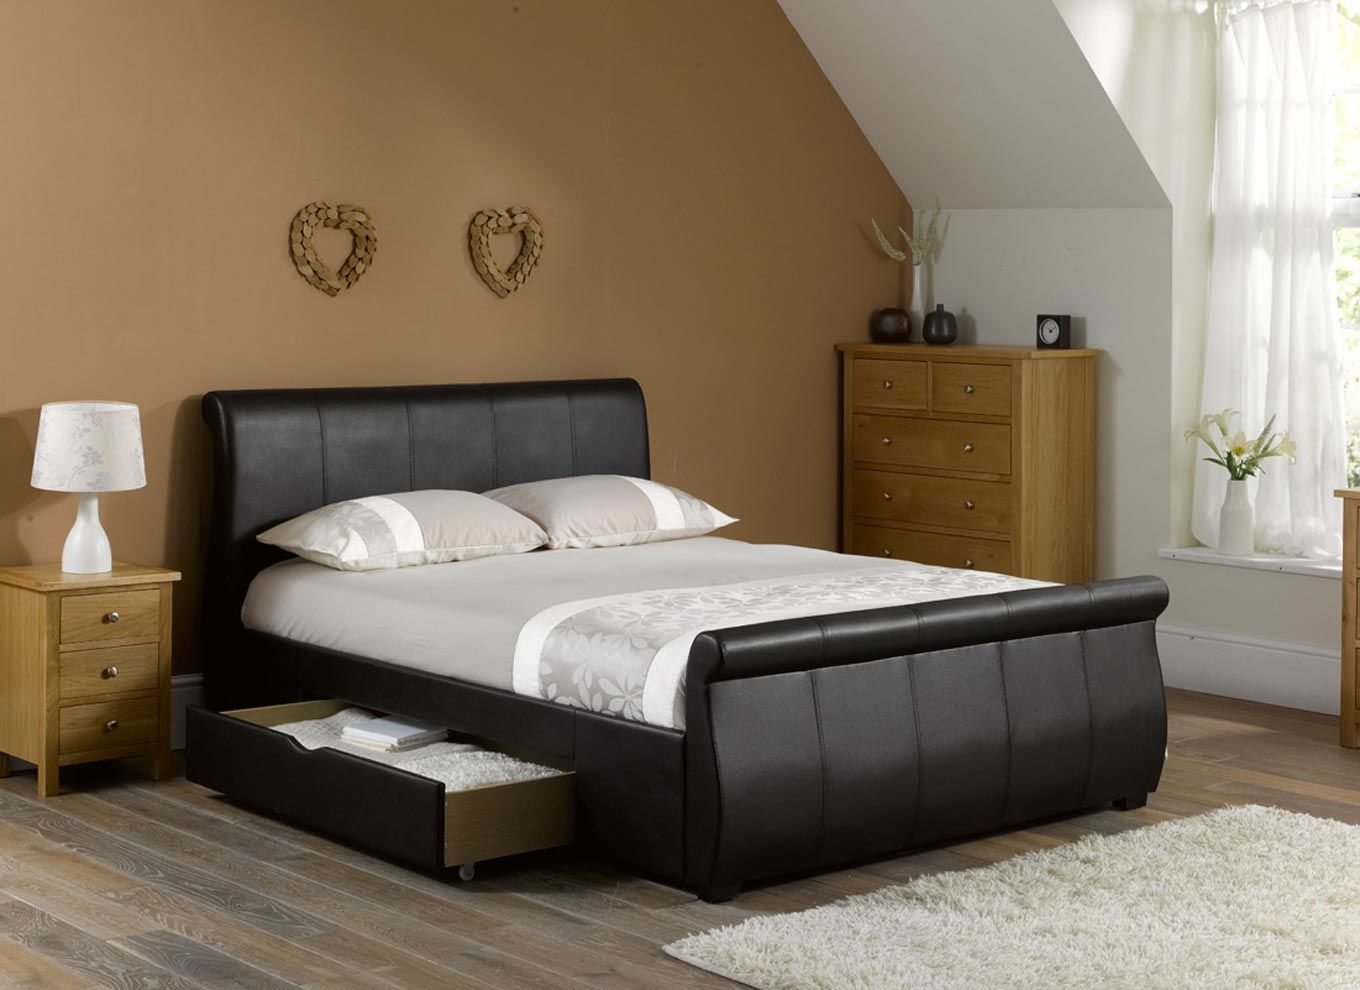 Image of: Storage Bed Plans Black